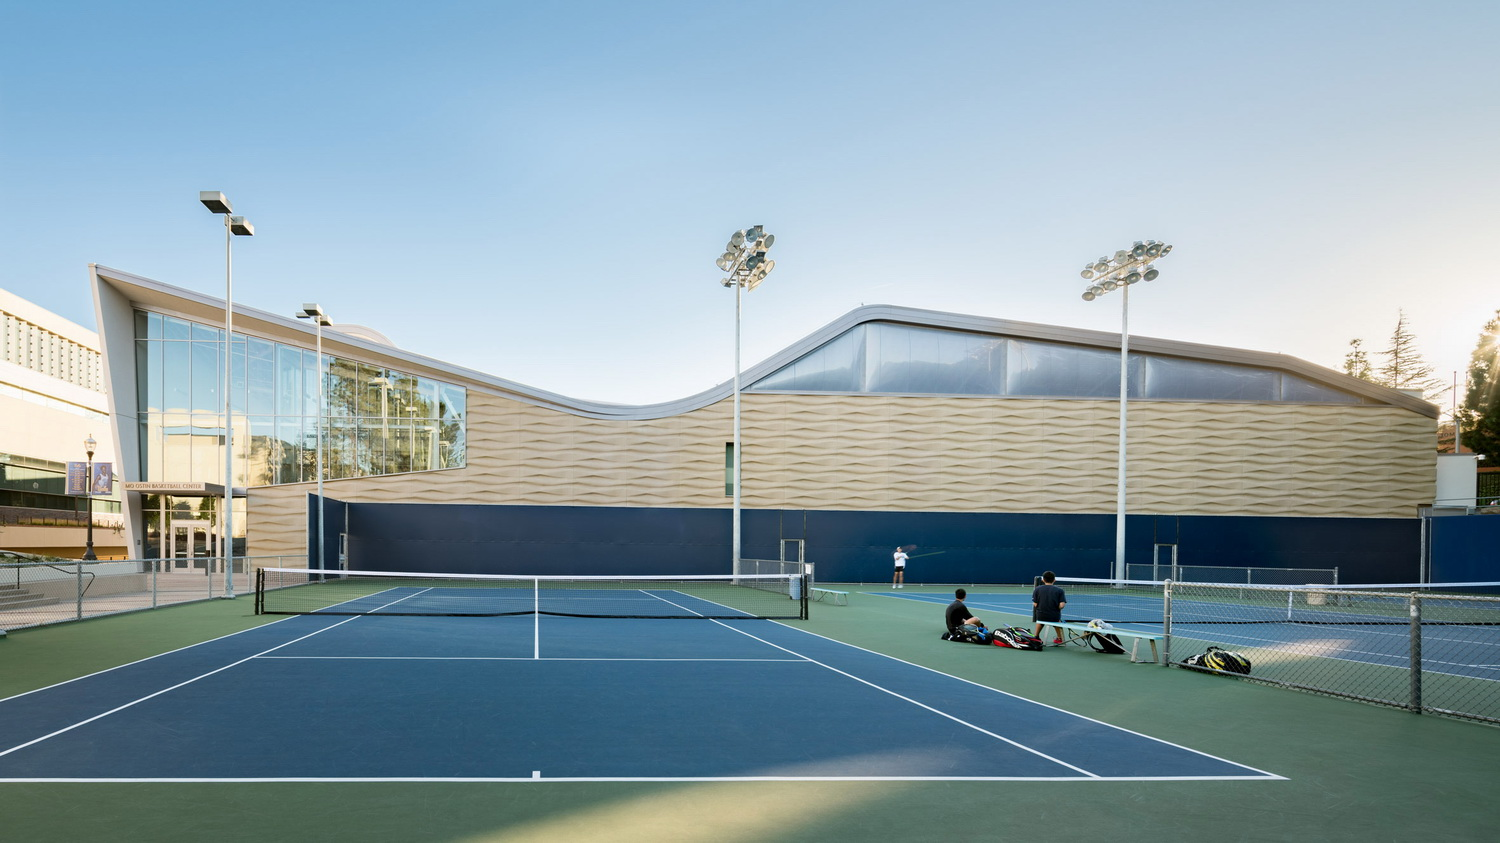 调整大小 ucla-basketball-facility-kevin-daly-architects-architecture-los-angeles-california-usa_dezeen_2364_col_16.jpg